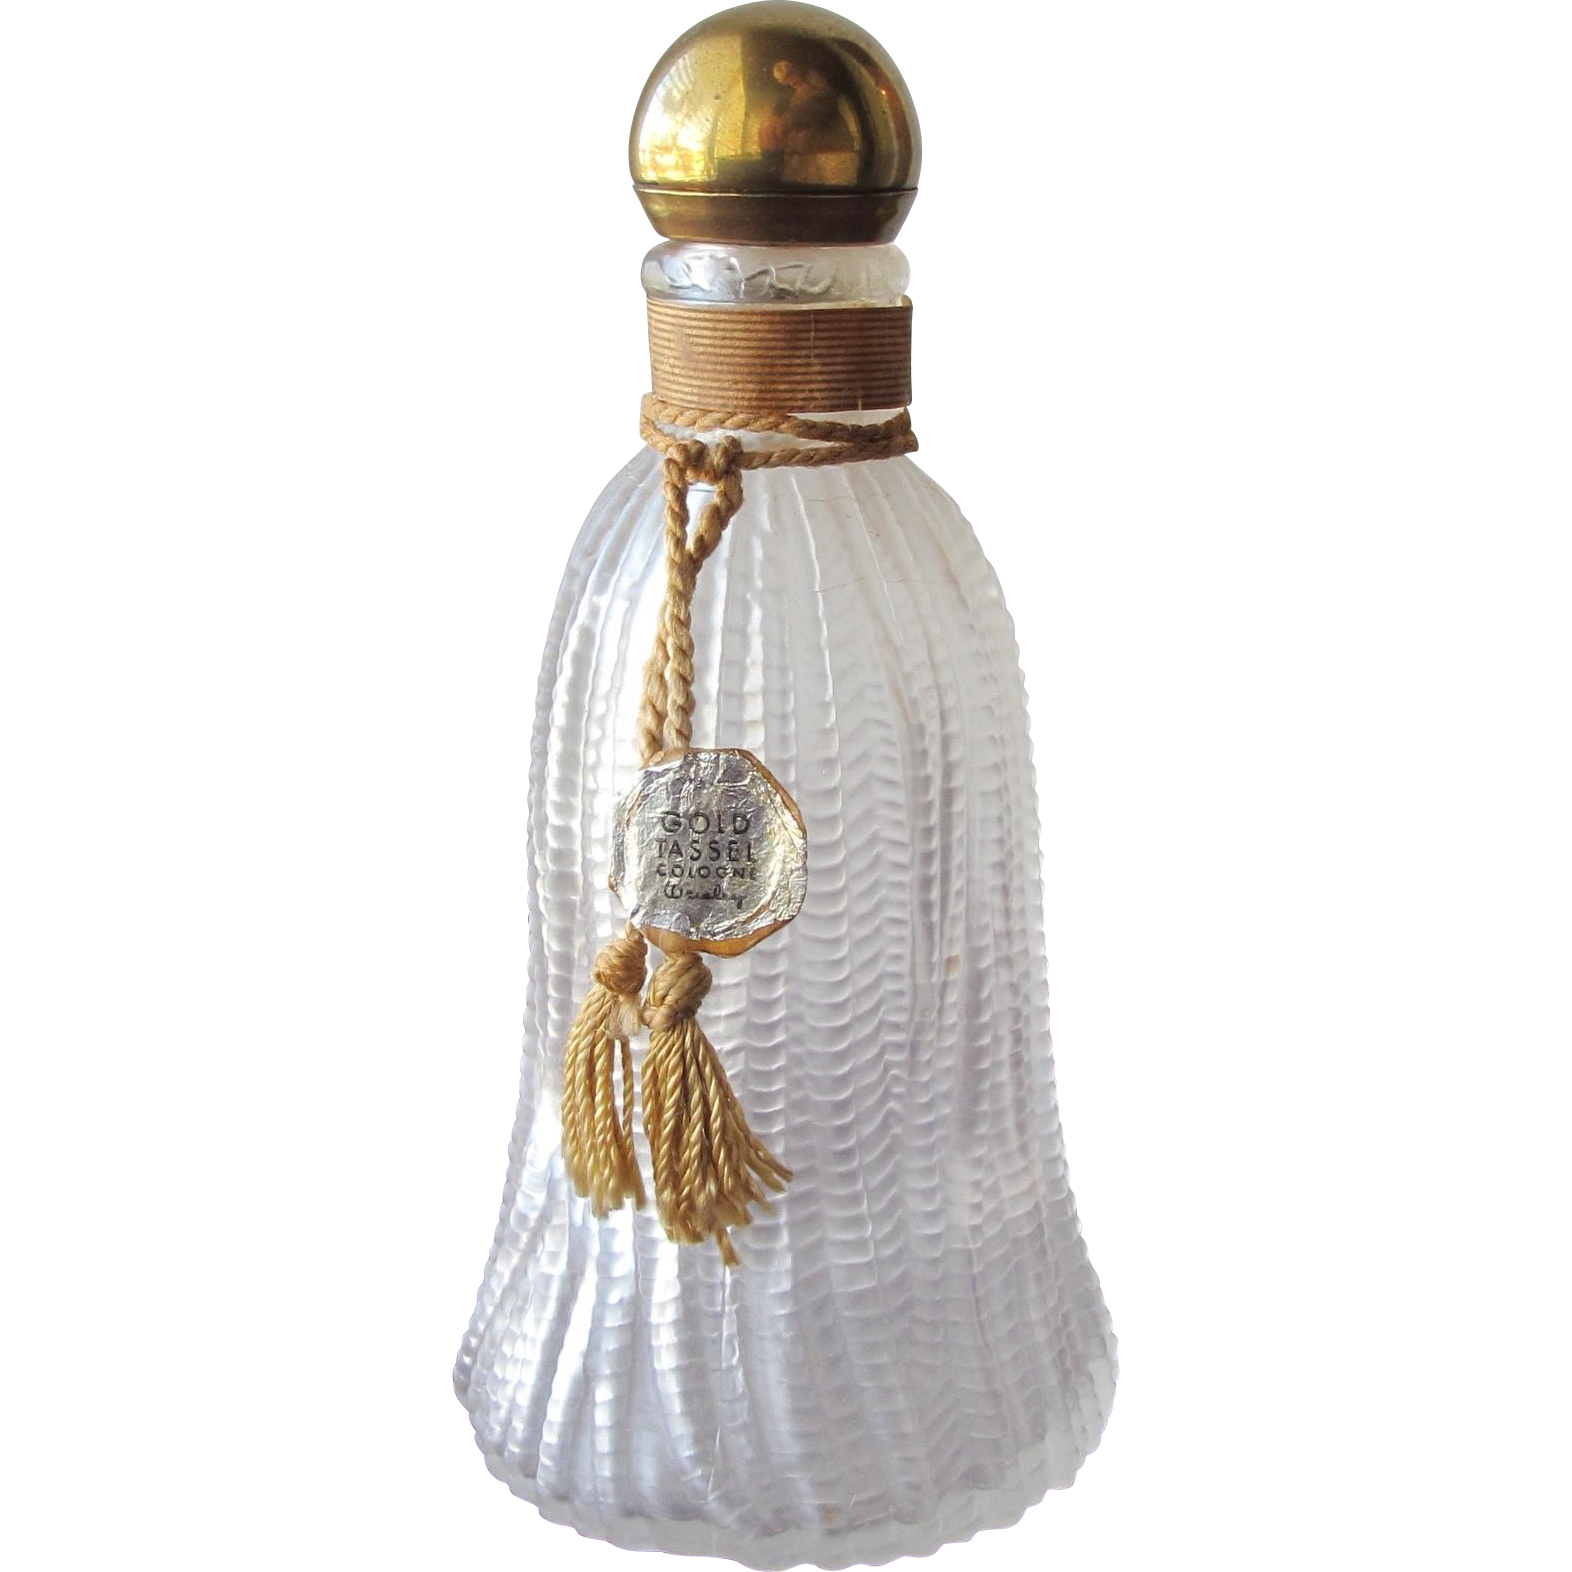 Commercial Perfume Bottle Wresley Gold Tassel Frosted Glass